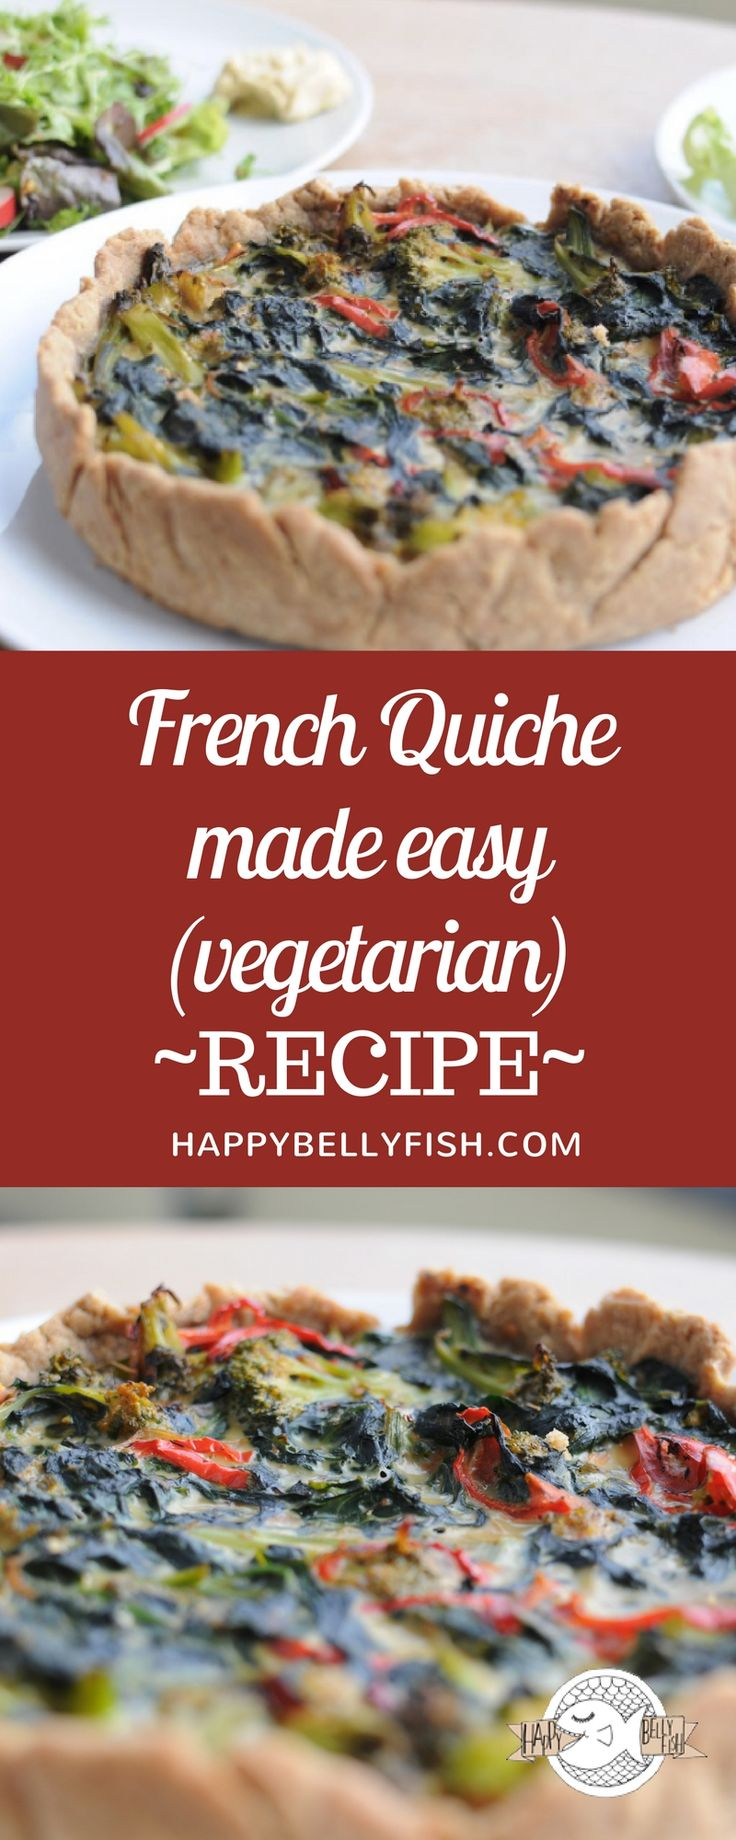 French Quiche made easy - vegetarian recipe: https://happybellyfish.com/recipes/french-quiche-made-easy/ Французский пирог Киш - рецепт: https://happybellyfish.com/ru/recipes/french-quiche-made-easy/ Quiche französischer Rezept